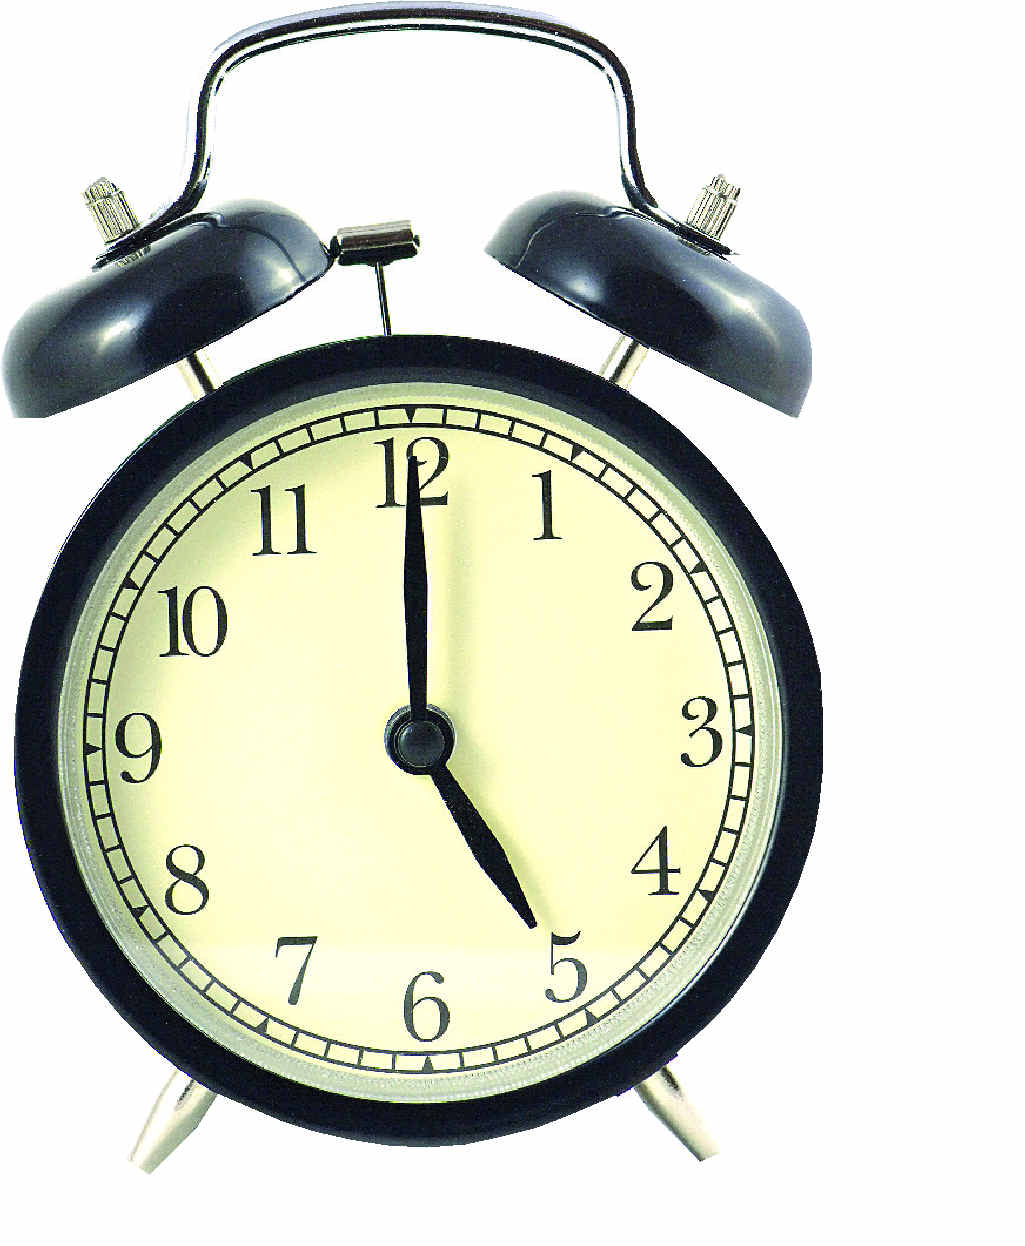 Big Rig Alarm Clock : Readers discuss daylight savings pros and cons for qld